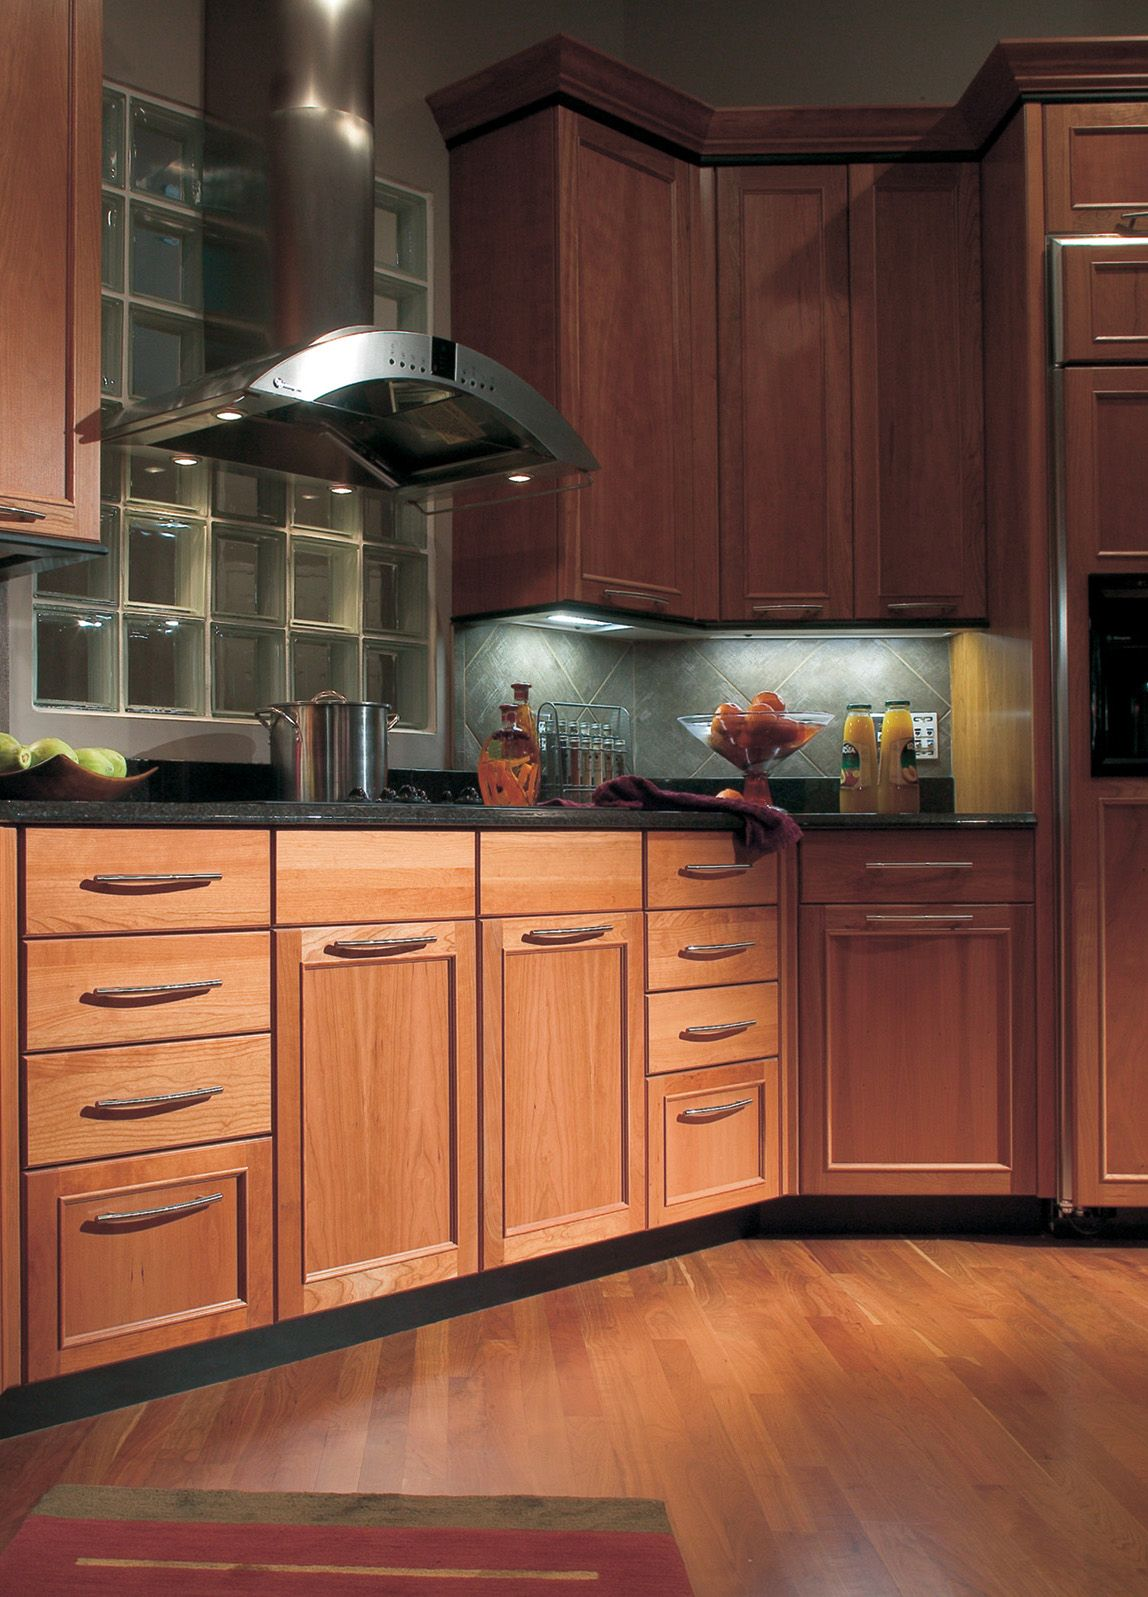 Cherry Wood Kitchen Cabinets Dura Supreme S Bria Cabinetry Shown